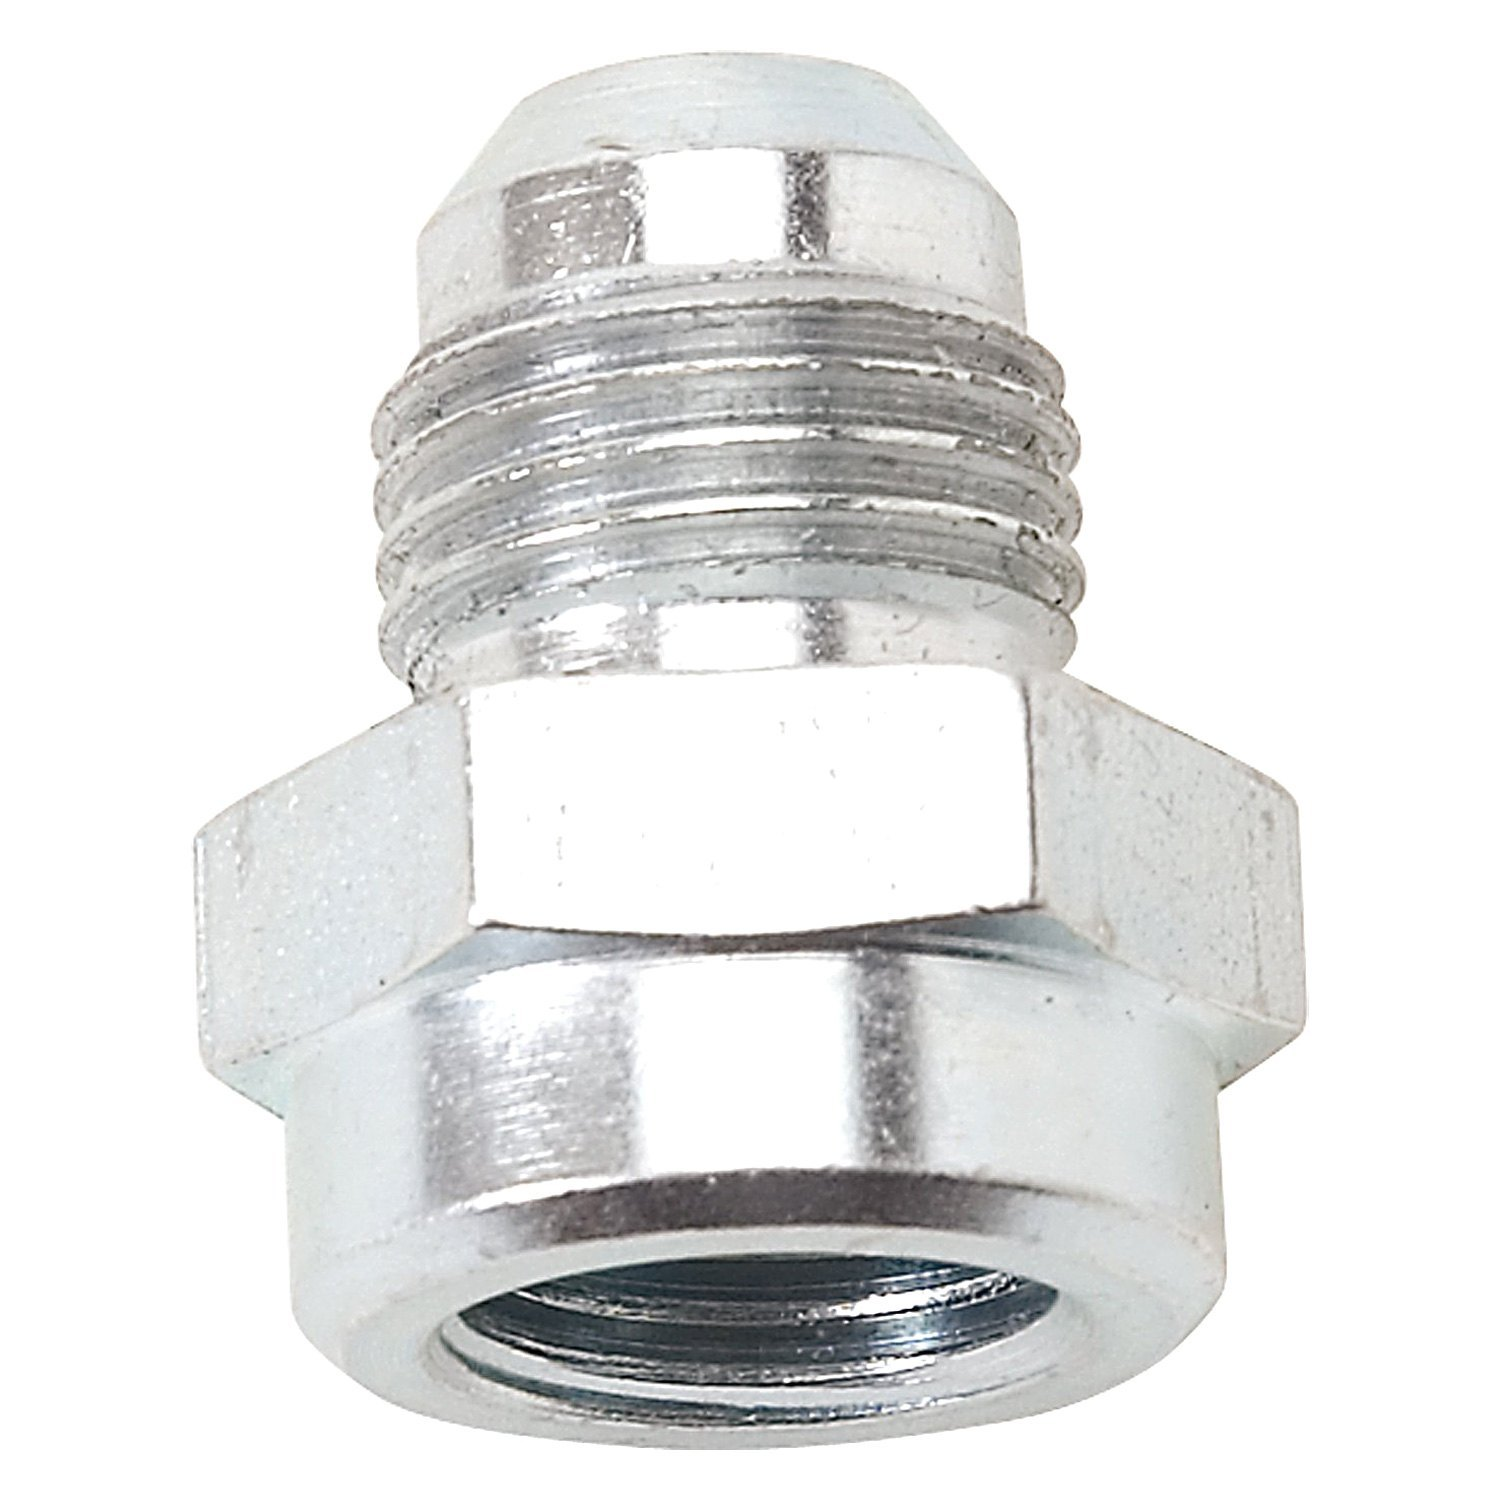 Russell inverted flare adapter female fitting ebay